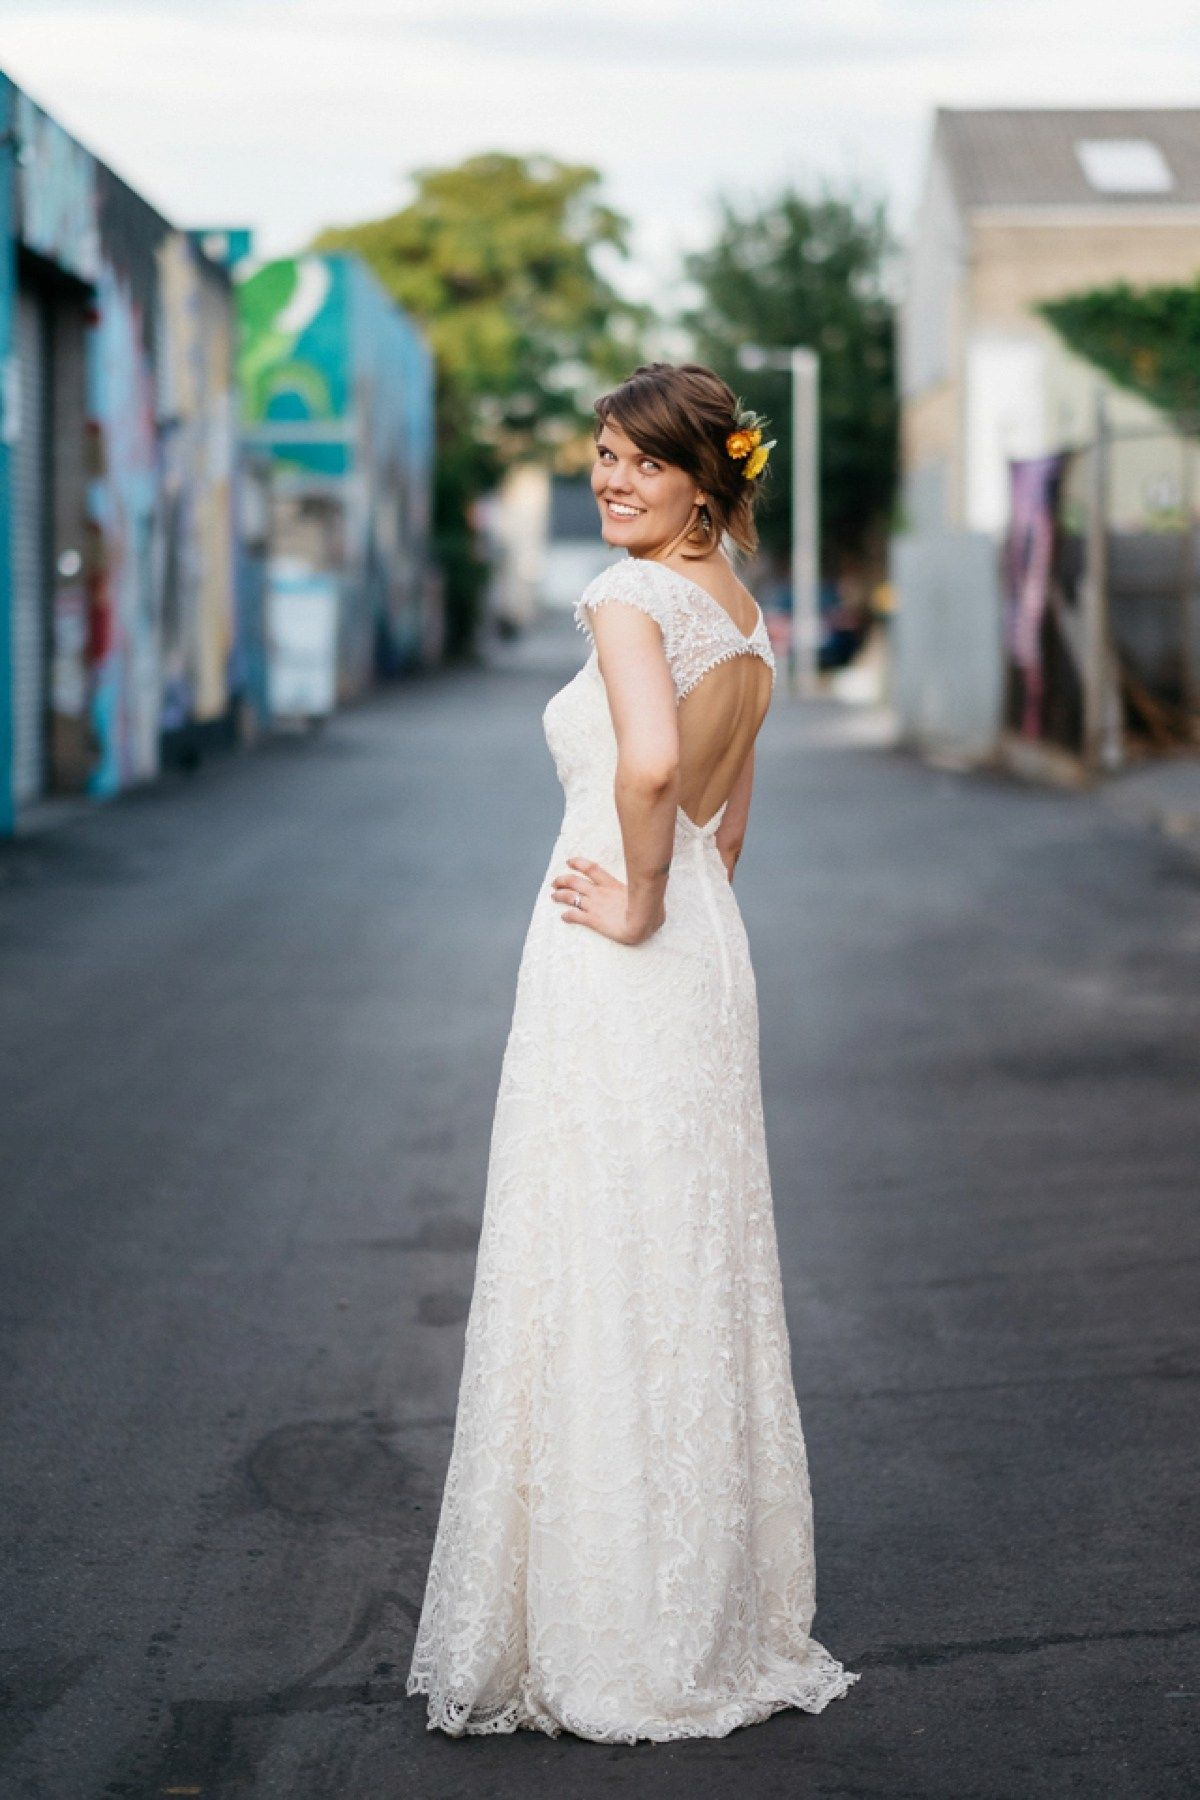 A Rustic And Intimate Wedding In Australia | Sweet wedding